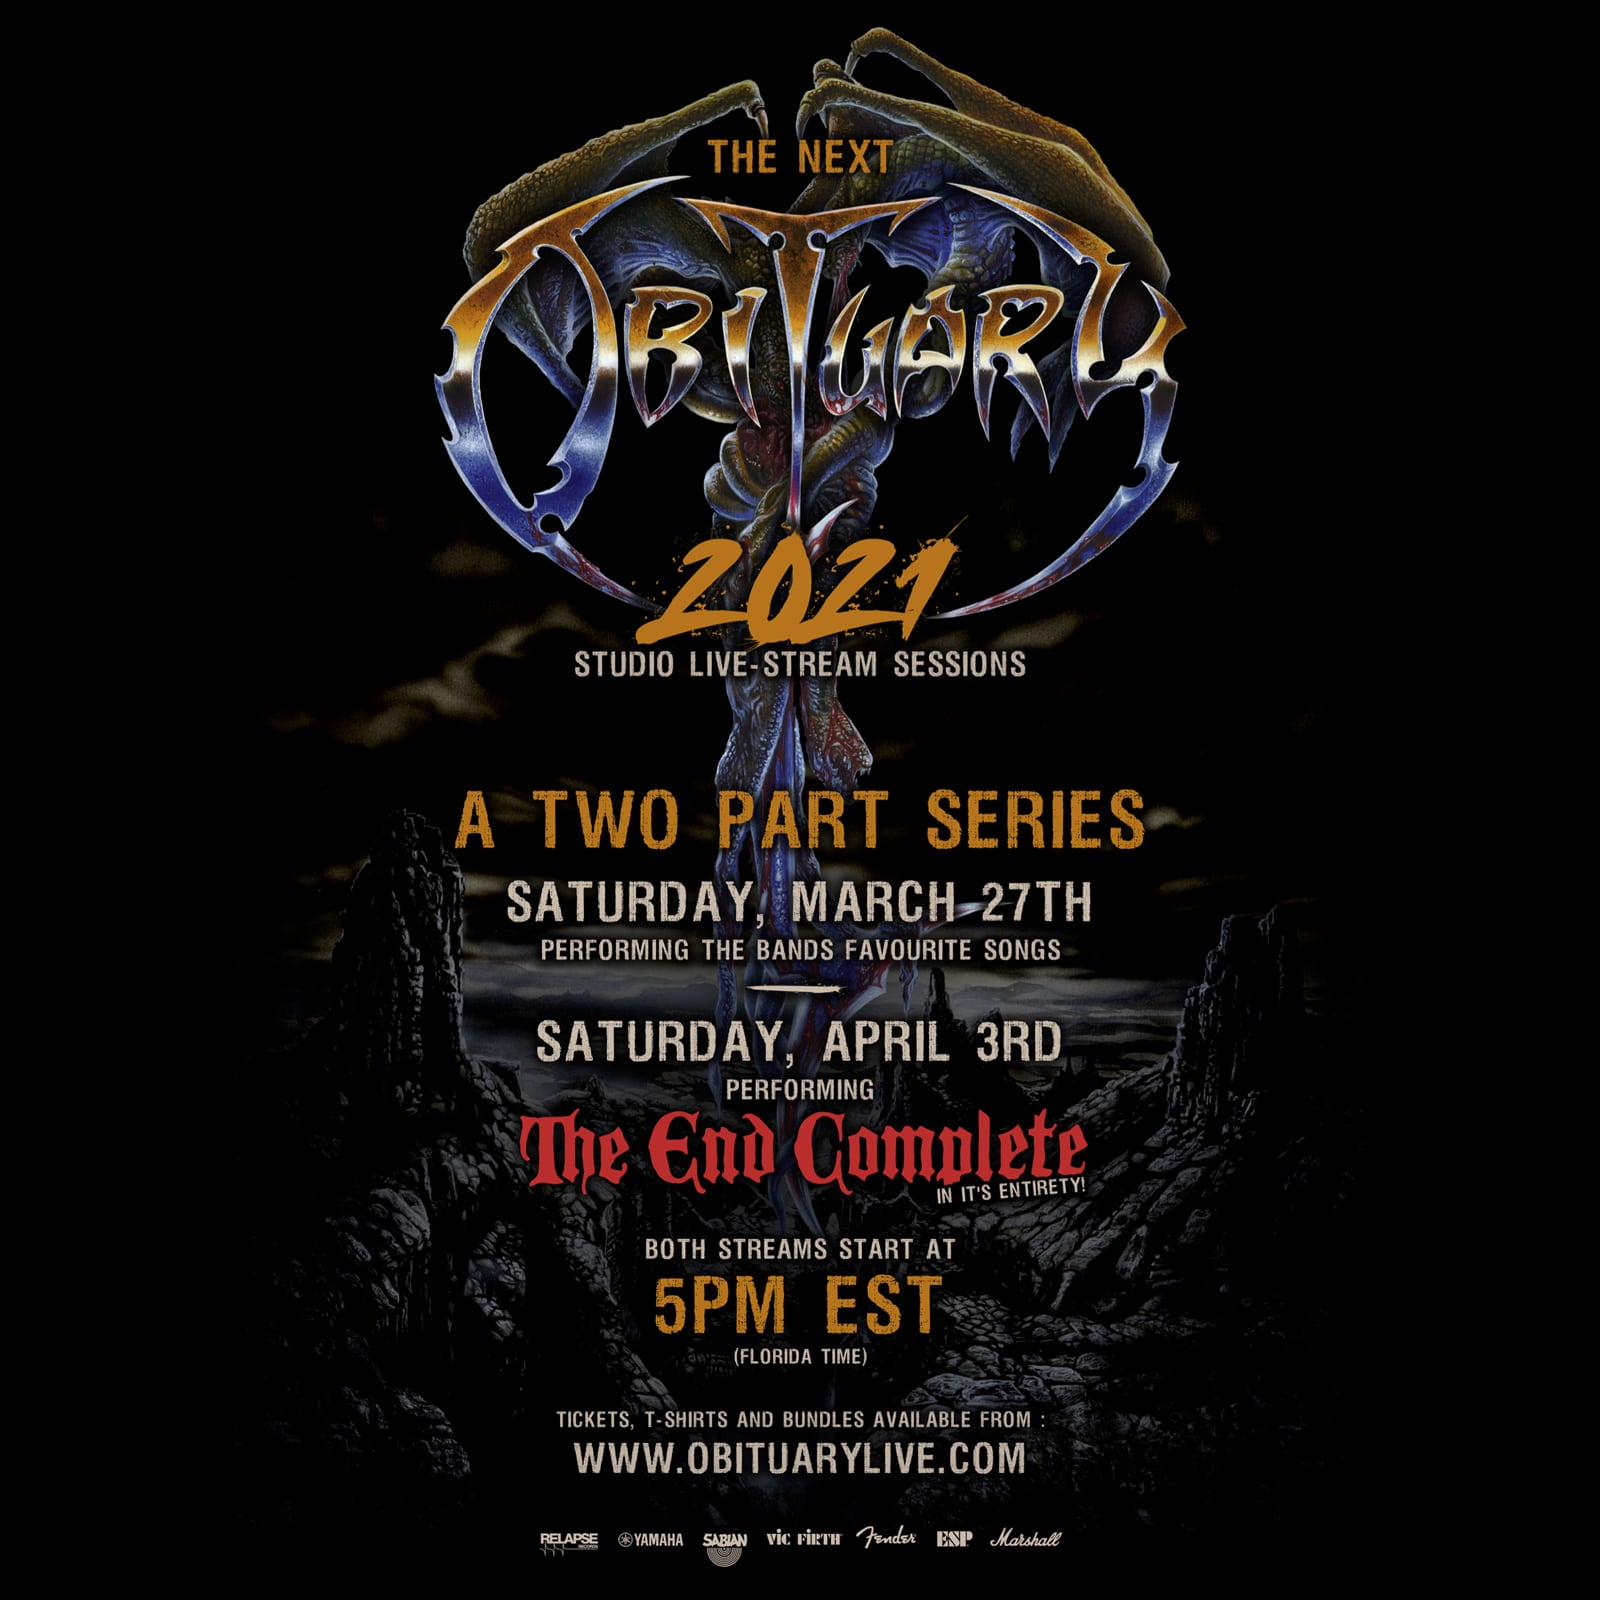 OBITUARY: Livestream am 27. März & 3. April • Livestreams, News •  vampster.com